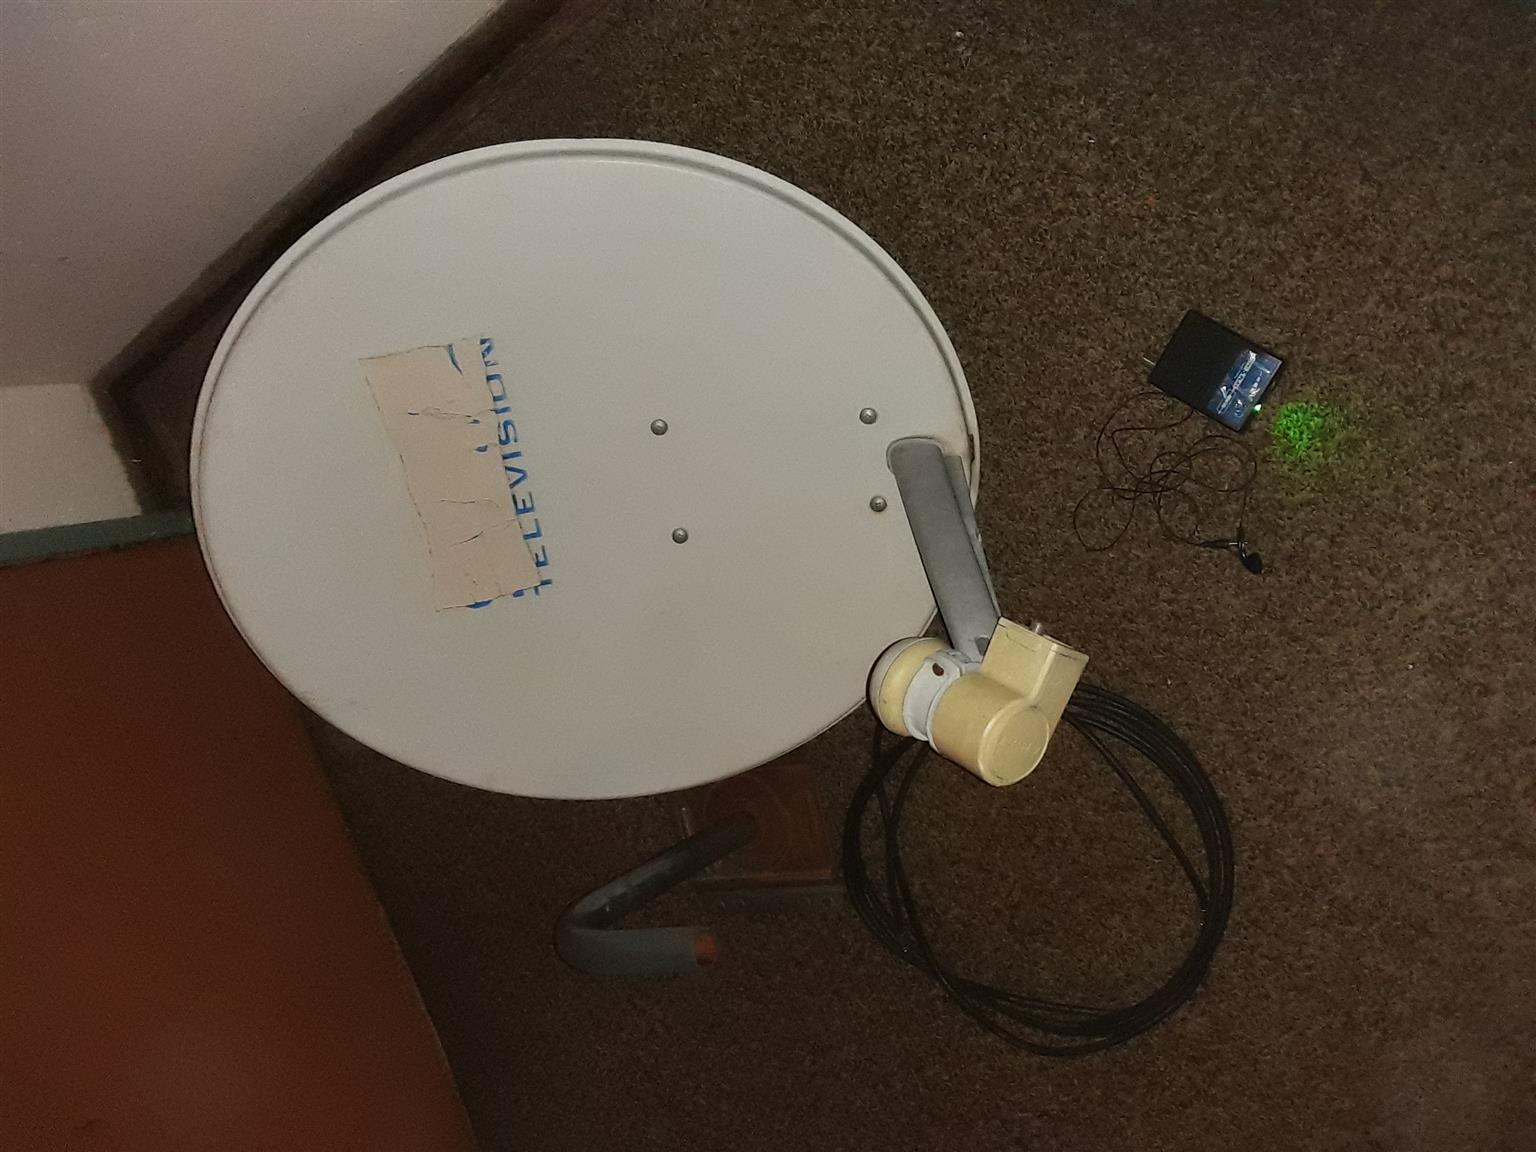 Dish,arm,lnb,wall mount bracket,Satfinder +test cable and earphone for sale!